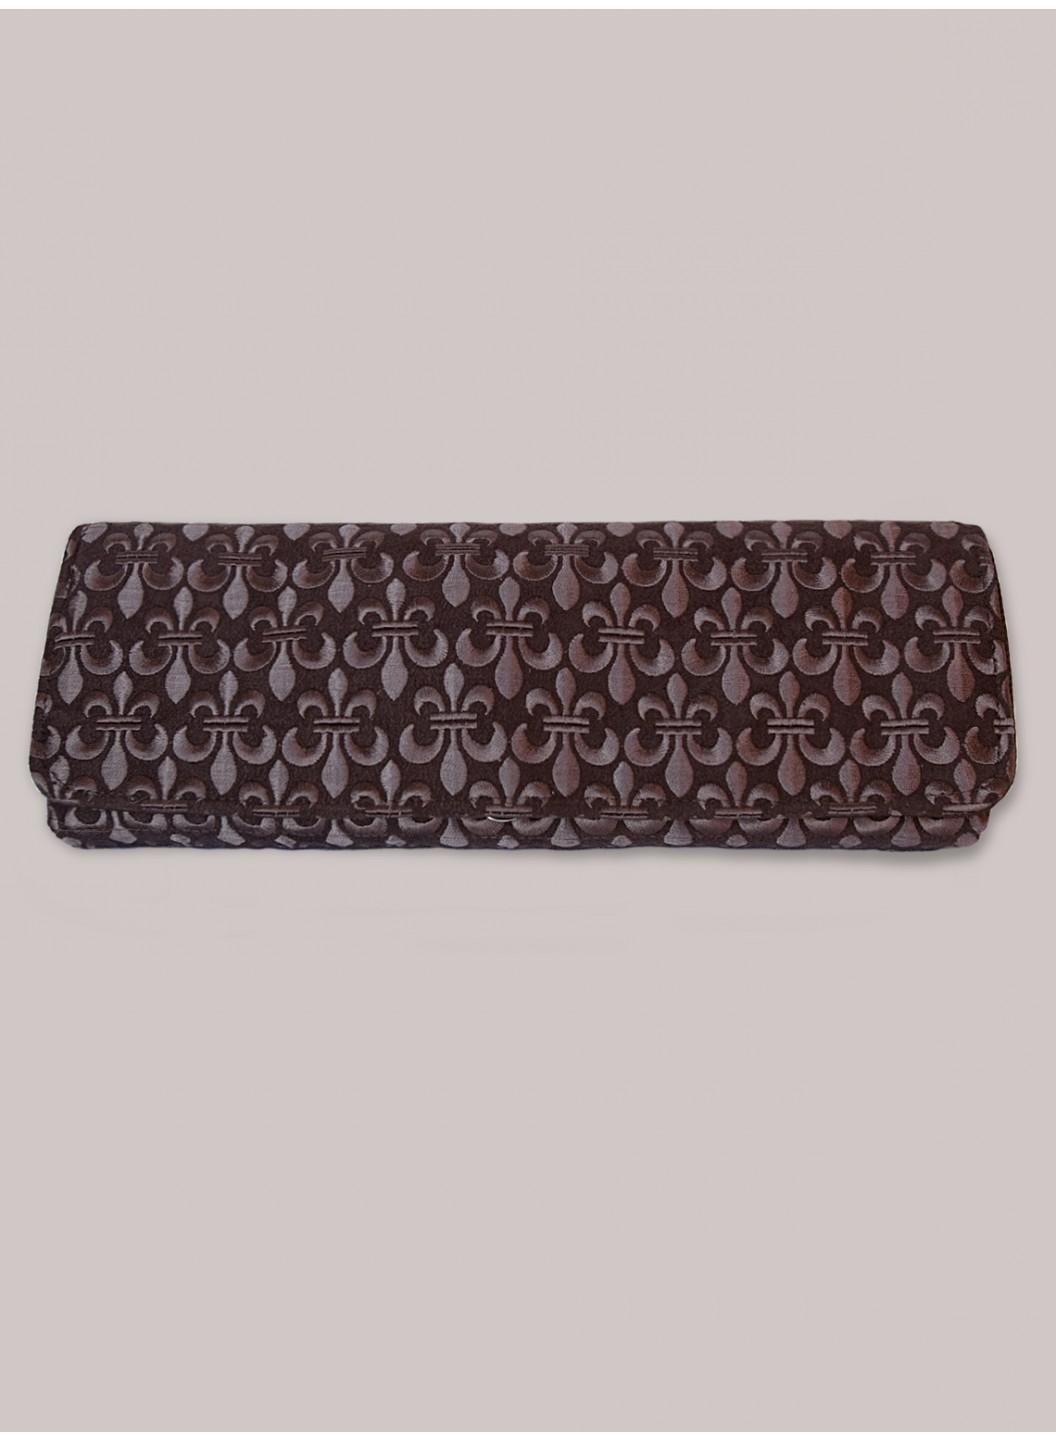 Claire Clutch in Dark Taupe